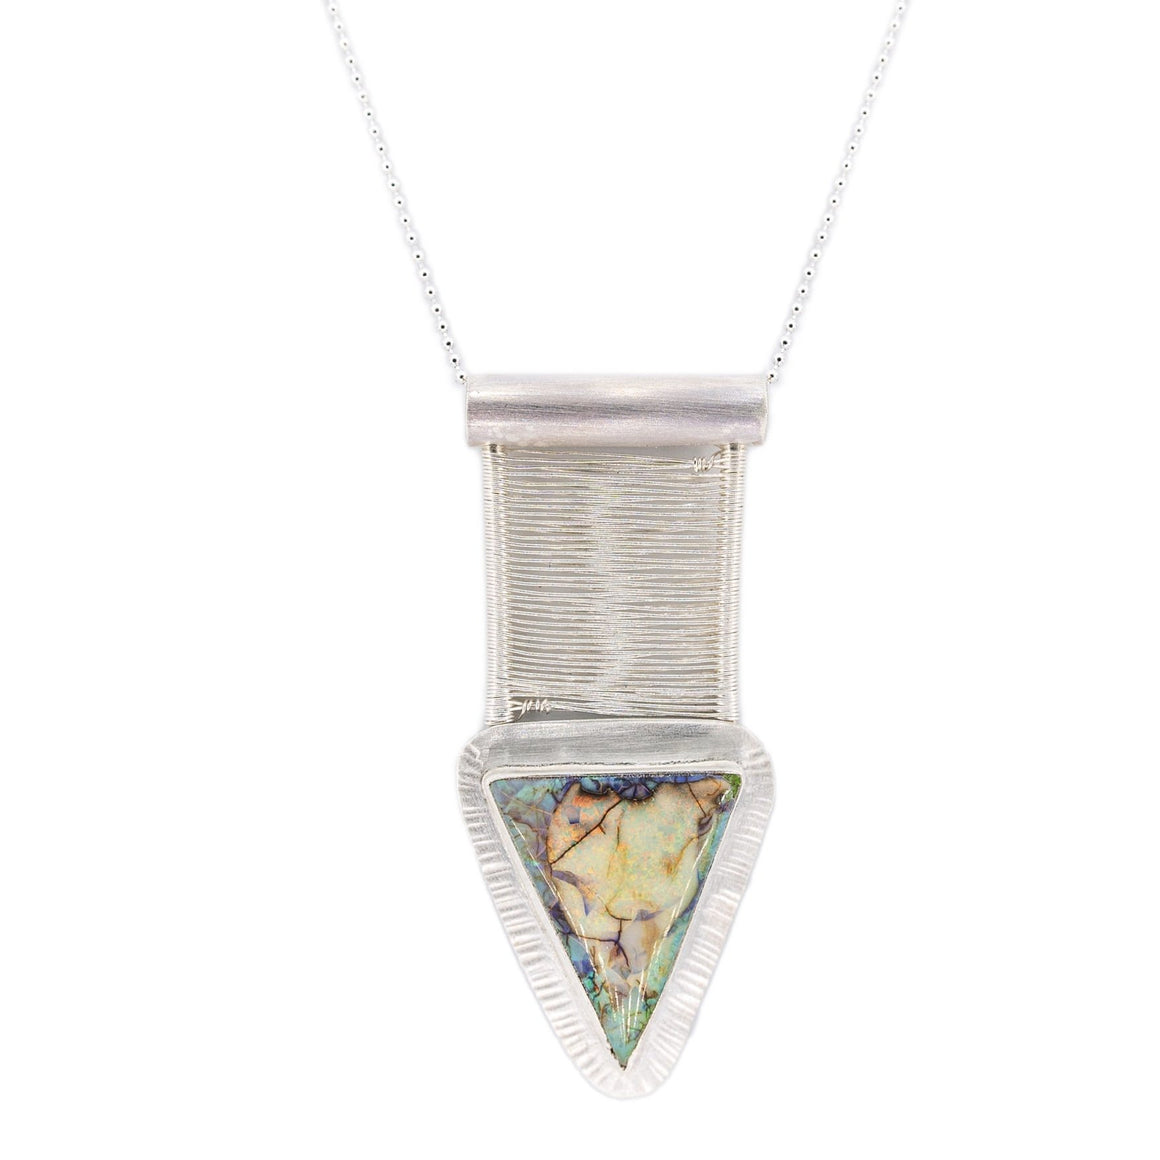 opal pendant by Original Sin Jewelry hand forged and woven with fine silver in OSJ's Bridge style